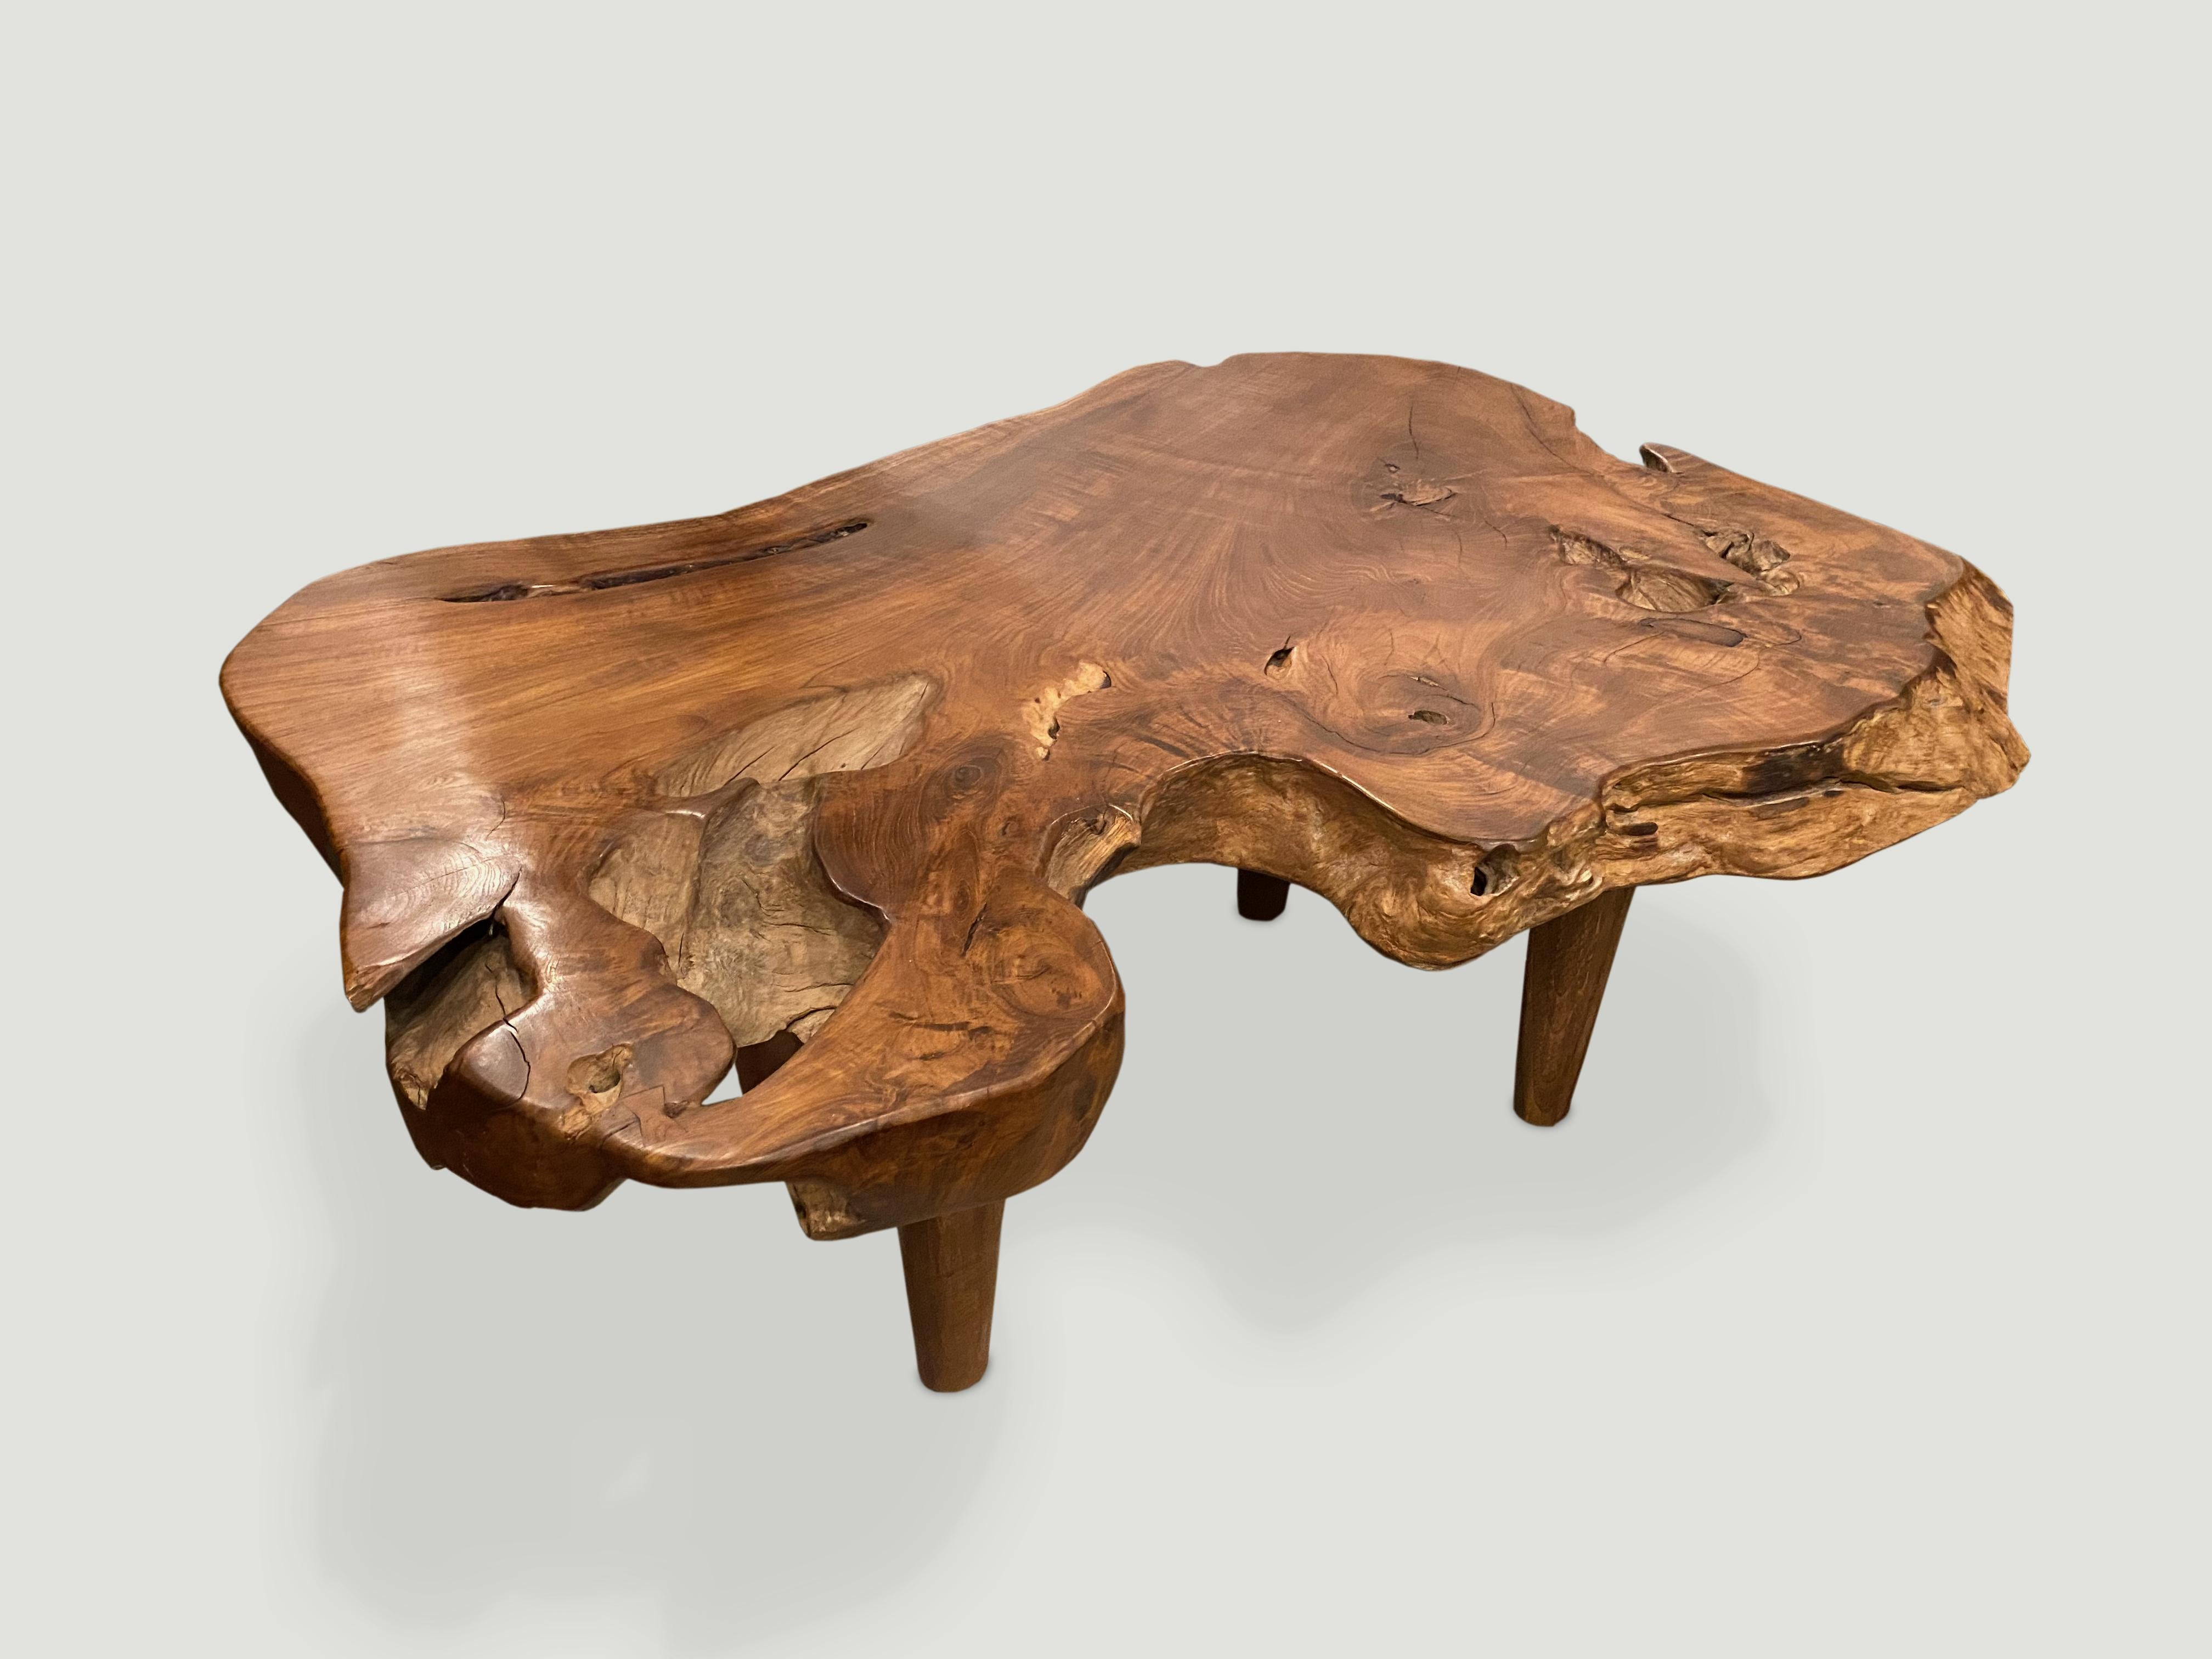 andrianna shamaris single slab live edge teak wood coffee table